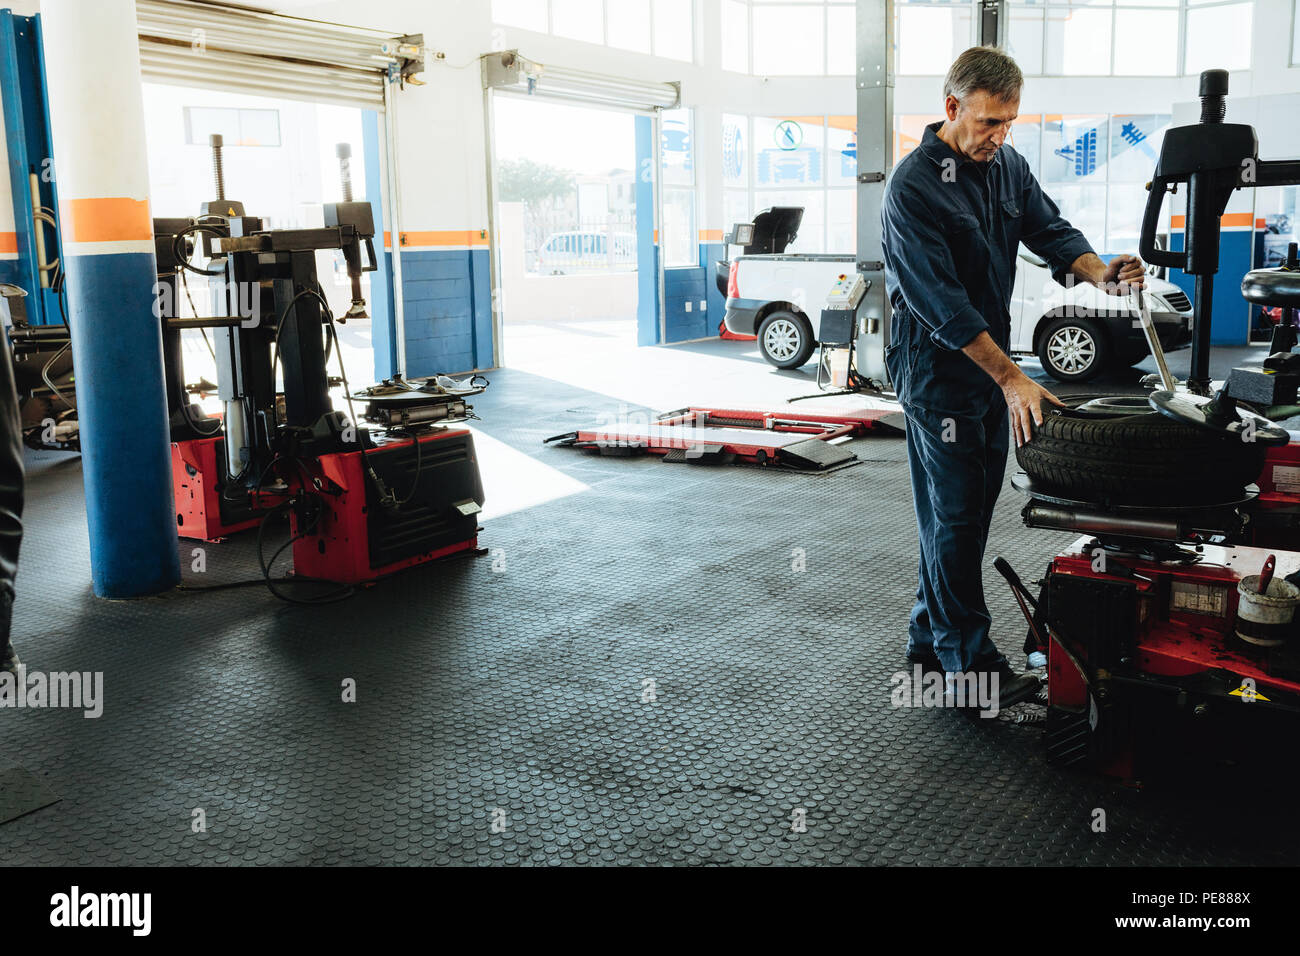 Car service station with mechanic removing tire from disc. Technician working on car tire removing machine in workshop. - Stock Image